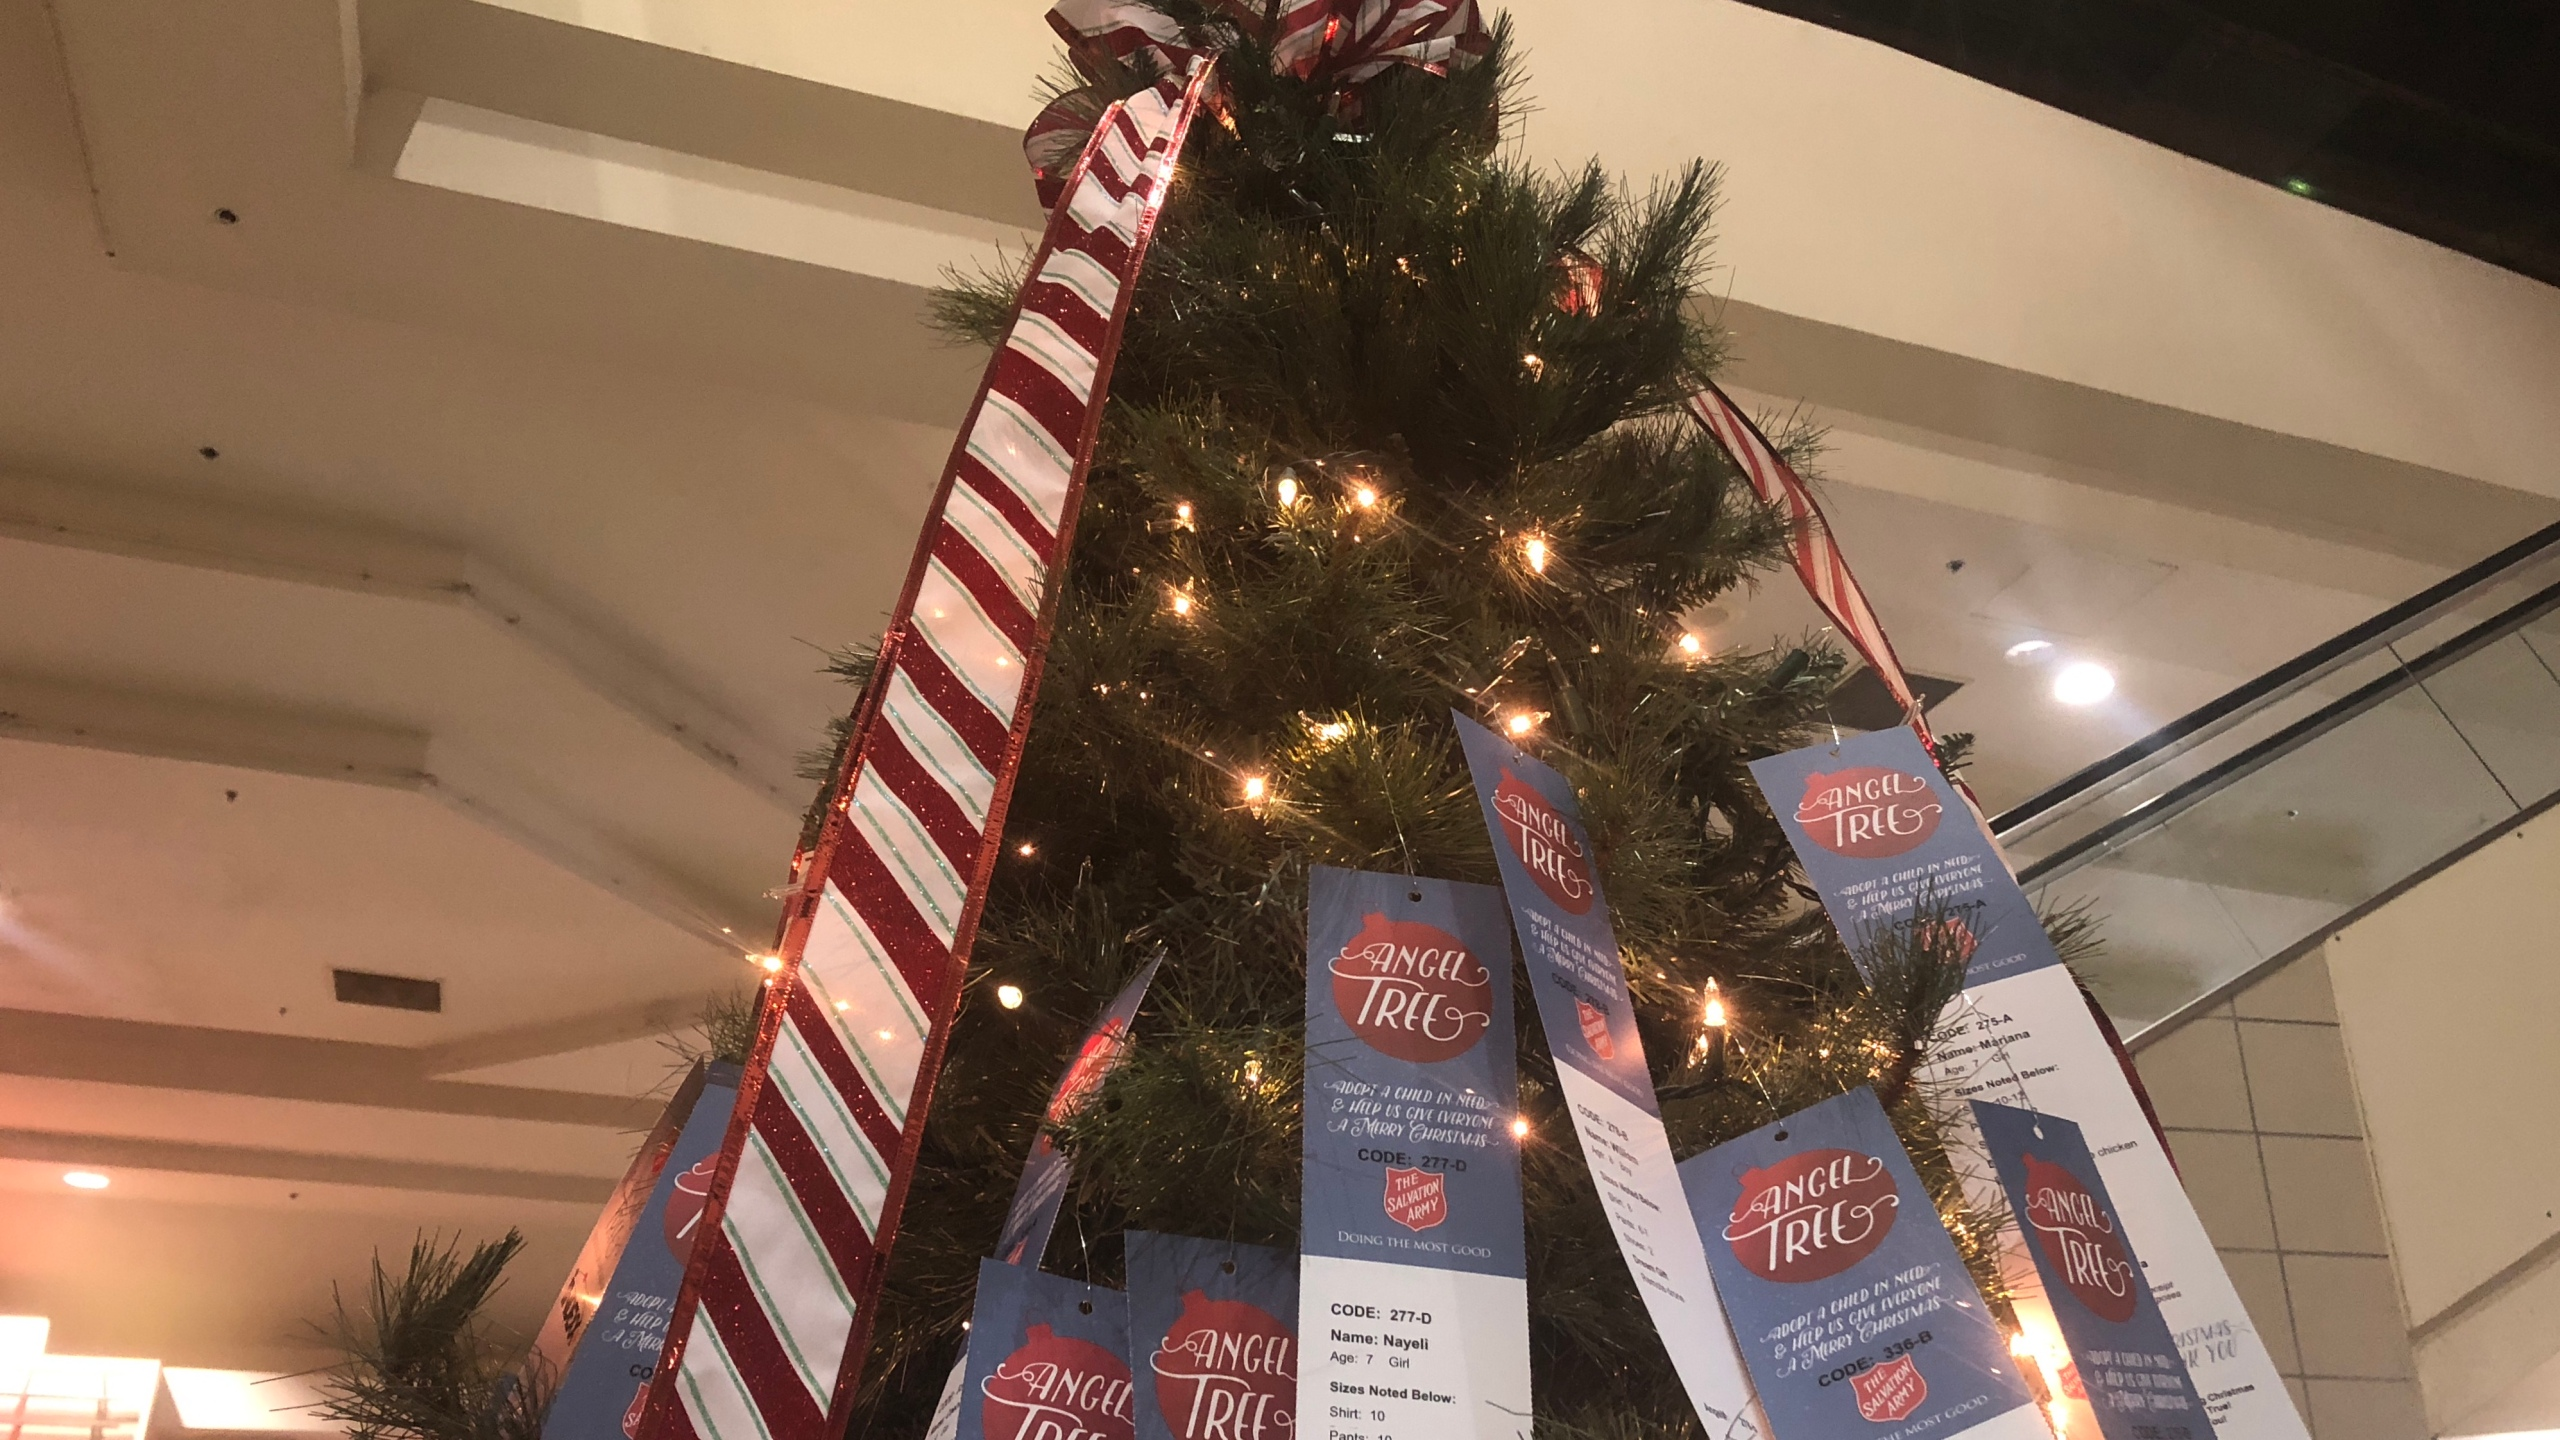 Christmas Help Programs 2020 The Salvation Army opens registration for 2020 Angel Tree program